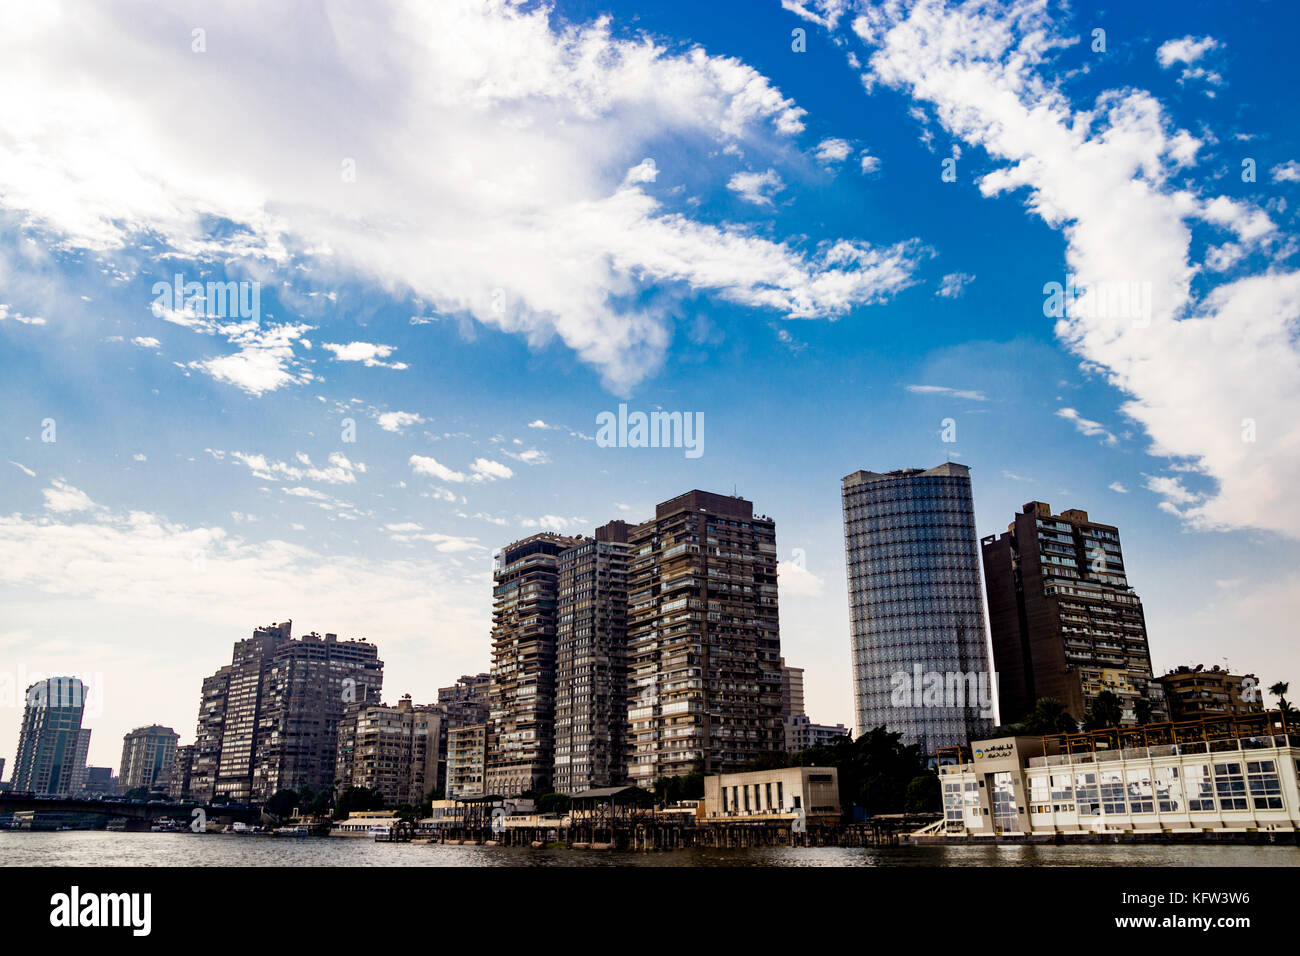 Buildings on background in Cairo, Egypt - Stock Image